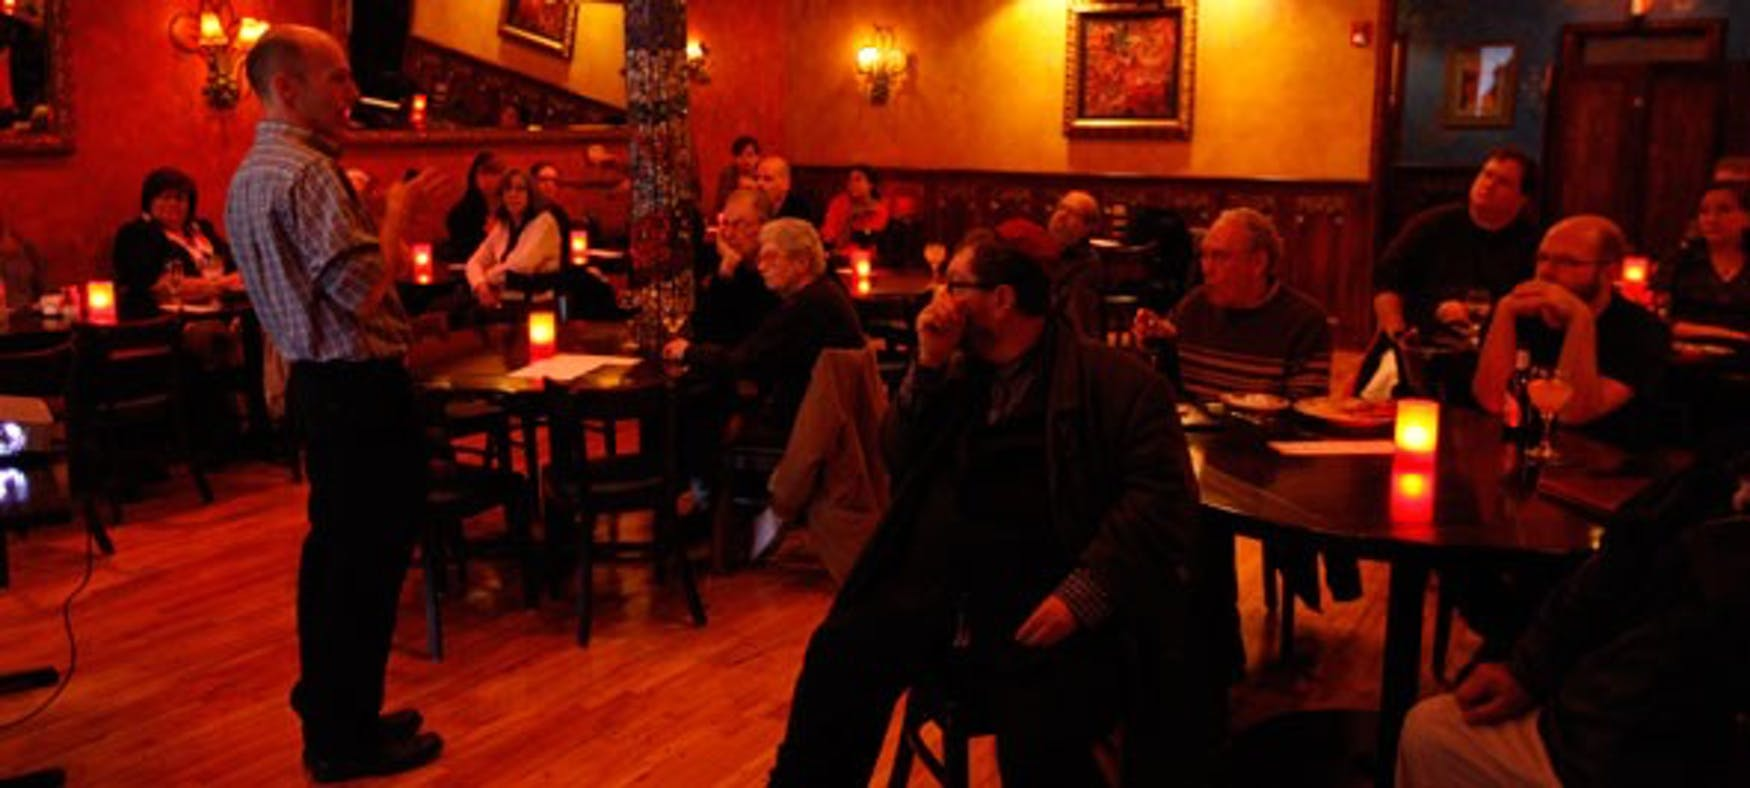 MONTHLY MISSION: Cafe Science occurs on the first Monday of every month to engage the community in lively conversation about cutting-edge research by Brandeis scientists at Solea Restaurant and Tapas Bar on Moody Street.